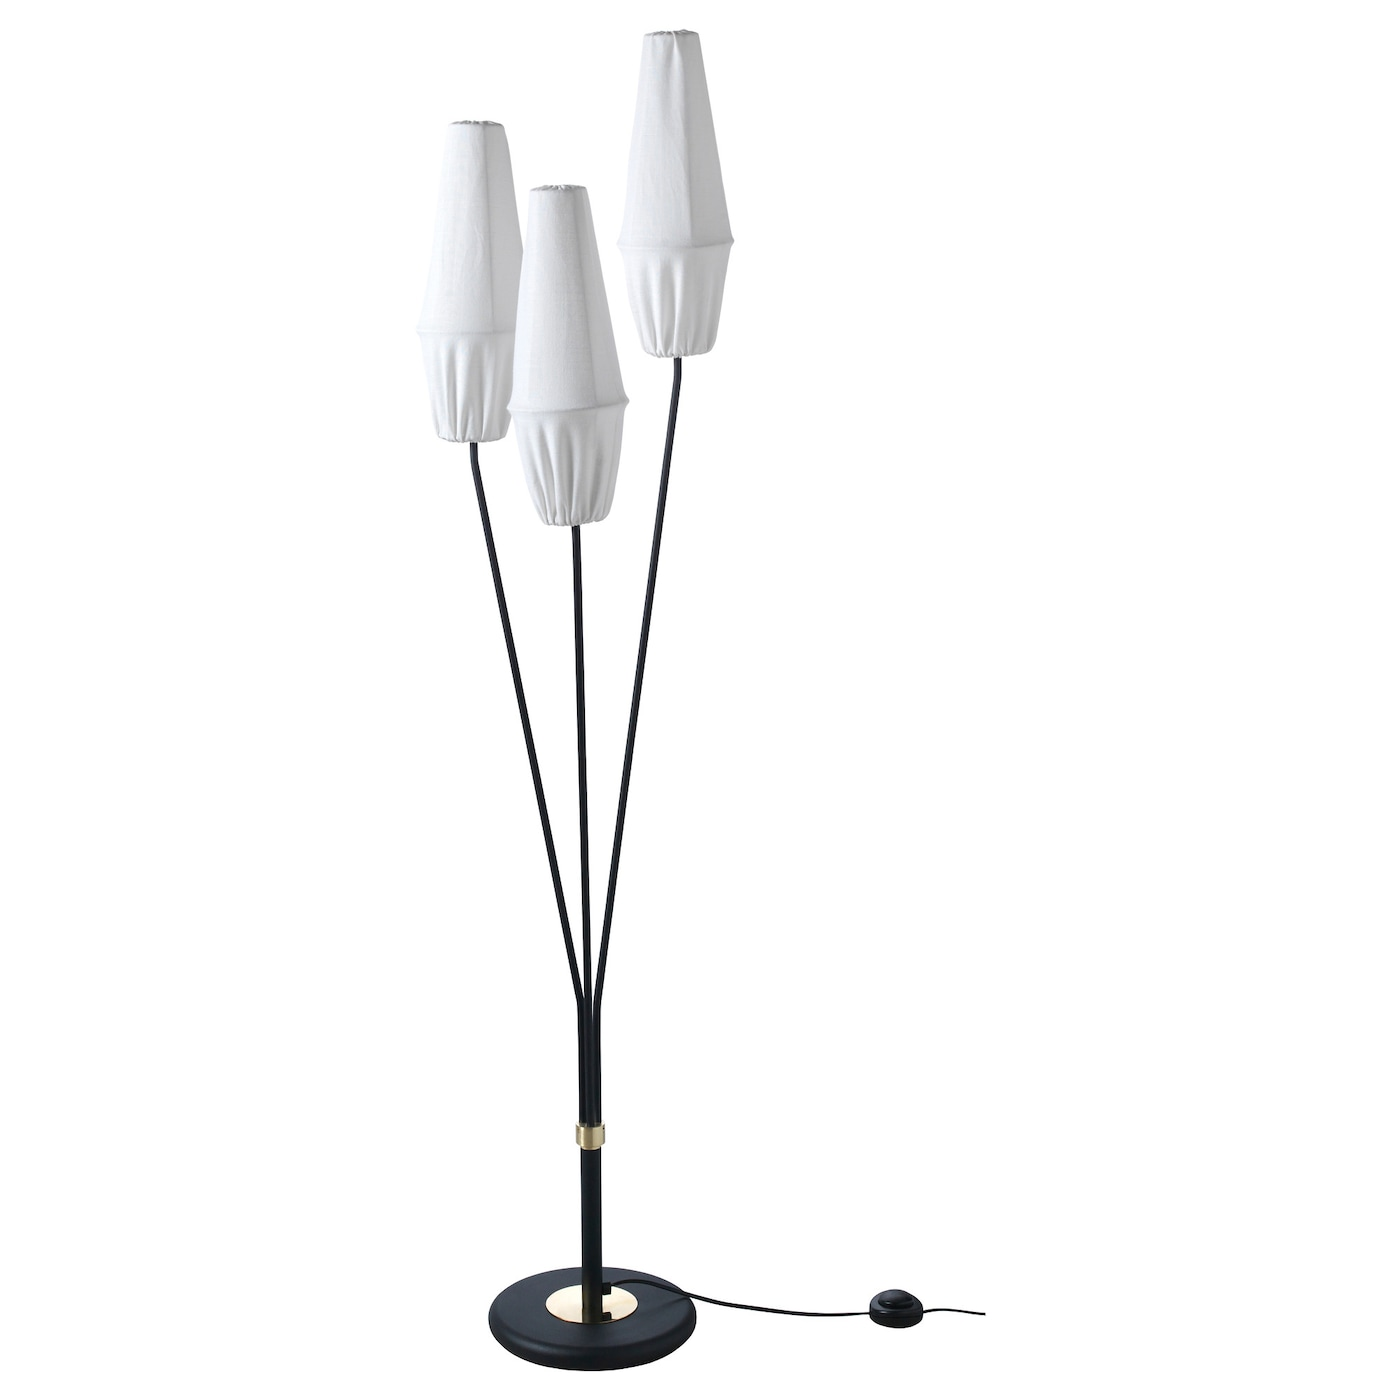 IKEA KNÄSJÖ floor lamp The textile shade provides a diffused and decorative light.